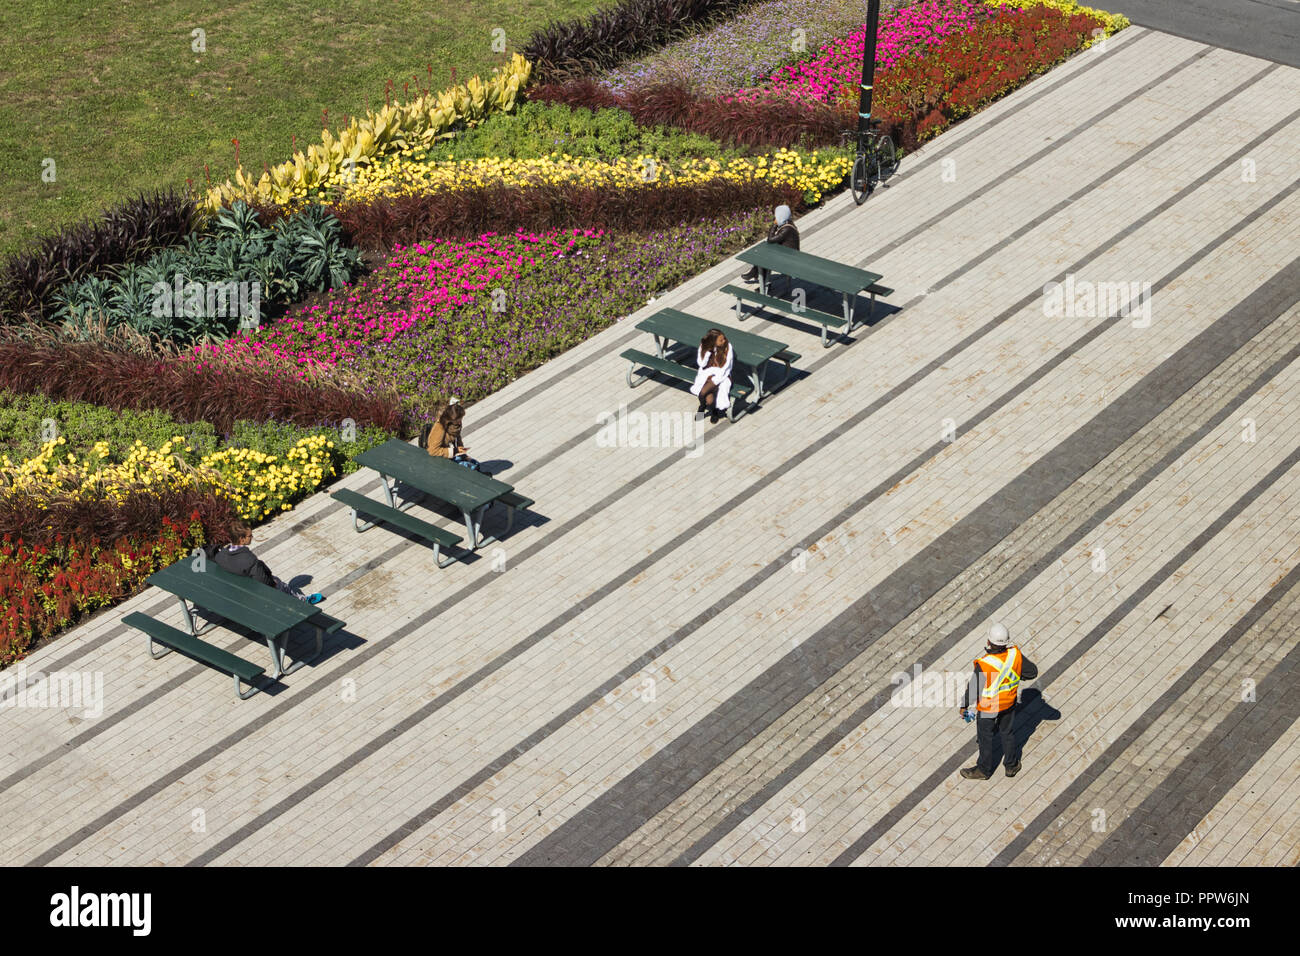 Urban scene with construction worker and people sitting at pik-nik tables in town. Urban Landscaping - flower ans plants in Summer. Bike attached to a - Stock Image